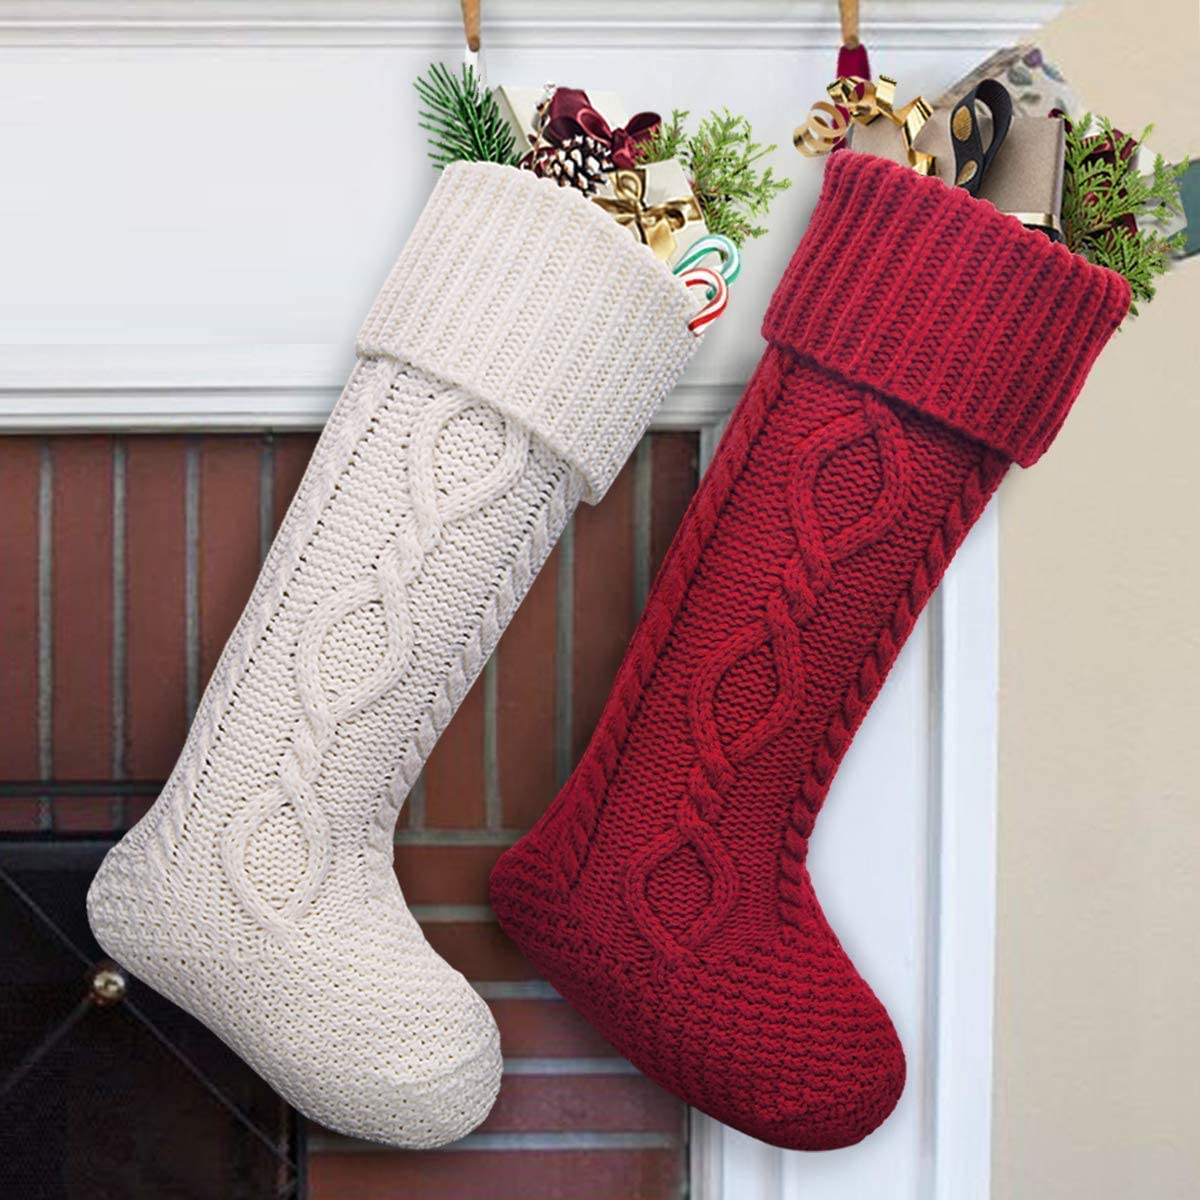 LimBridge Christmas Stockings, 2 Pack 20 inches Large Size Cable Knit Knitted Xmas Rustic Personalized Stocking Decorations for Family Holiday Season Decor, White or Red